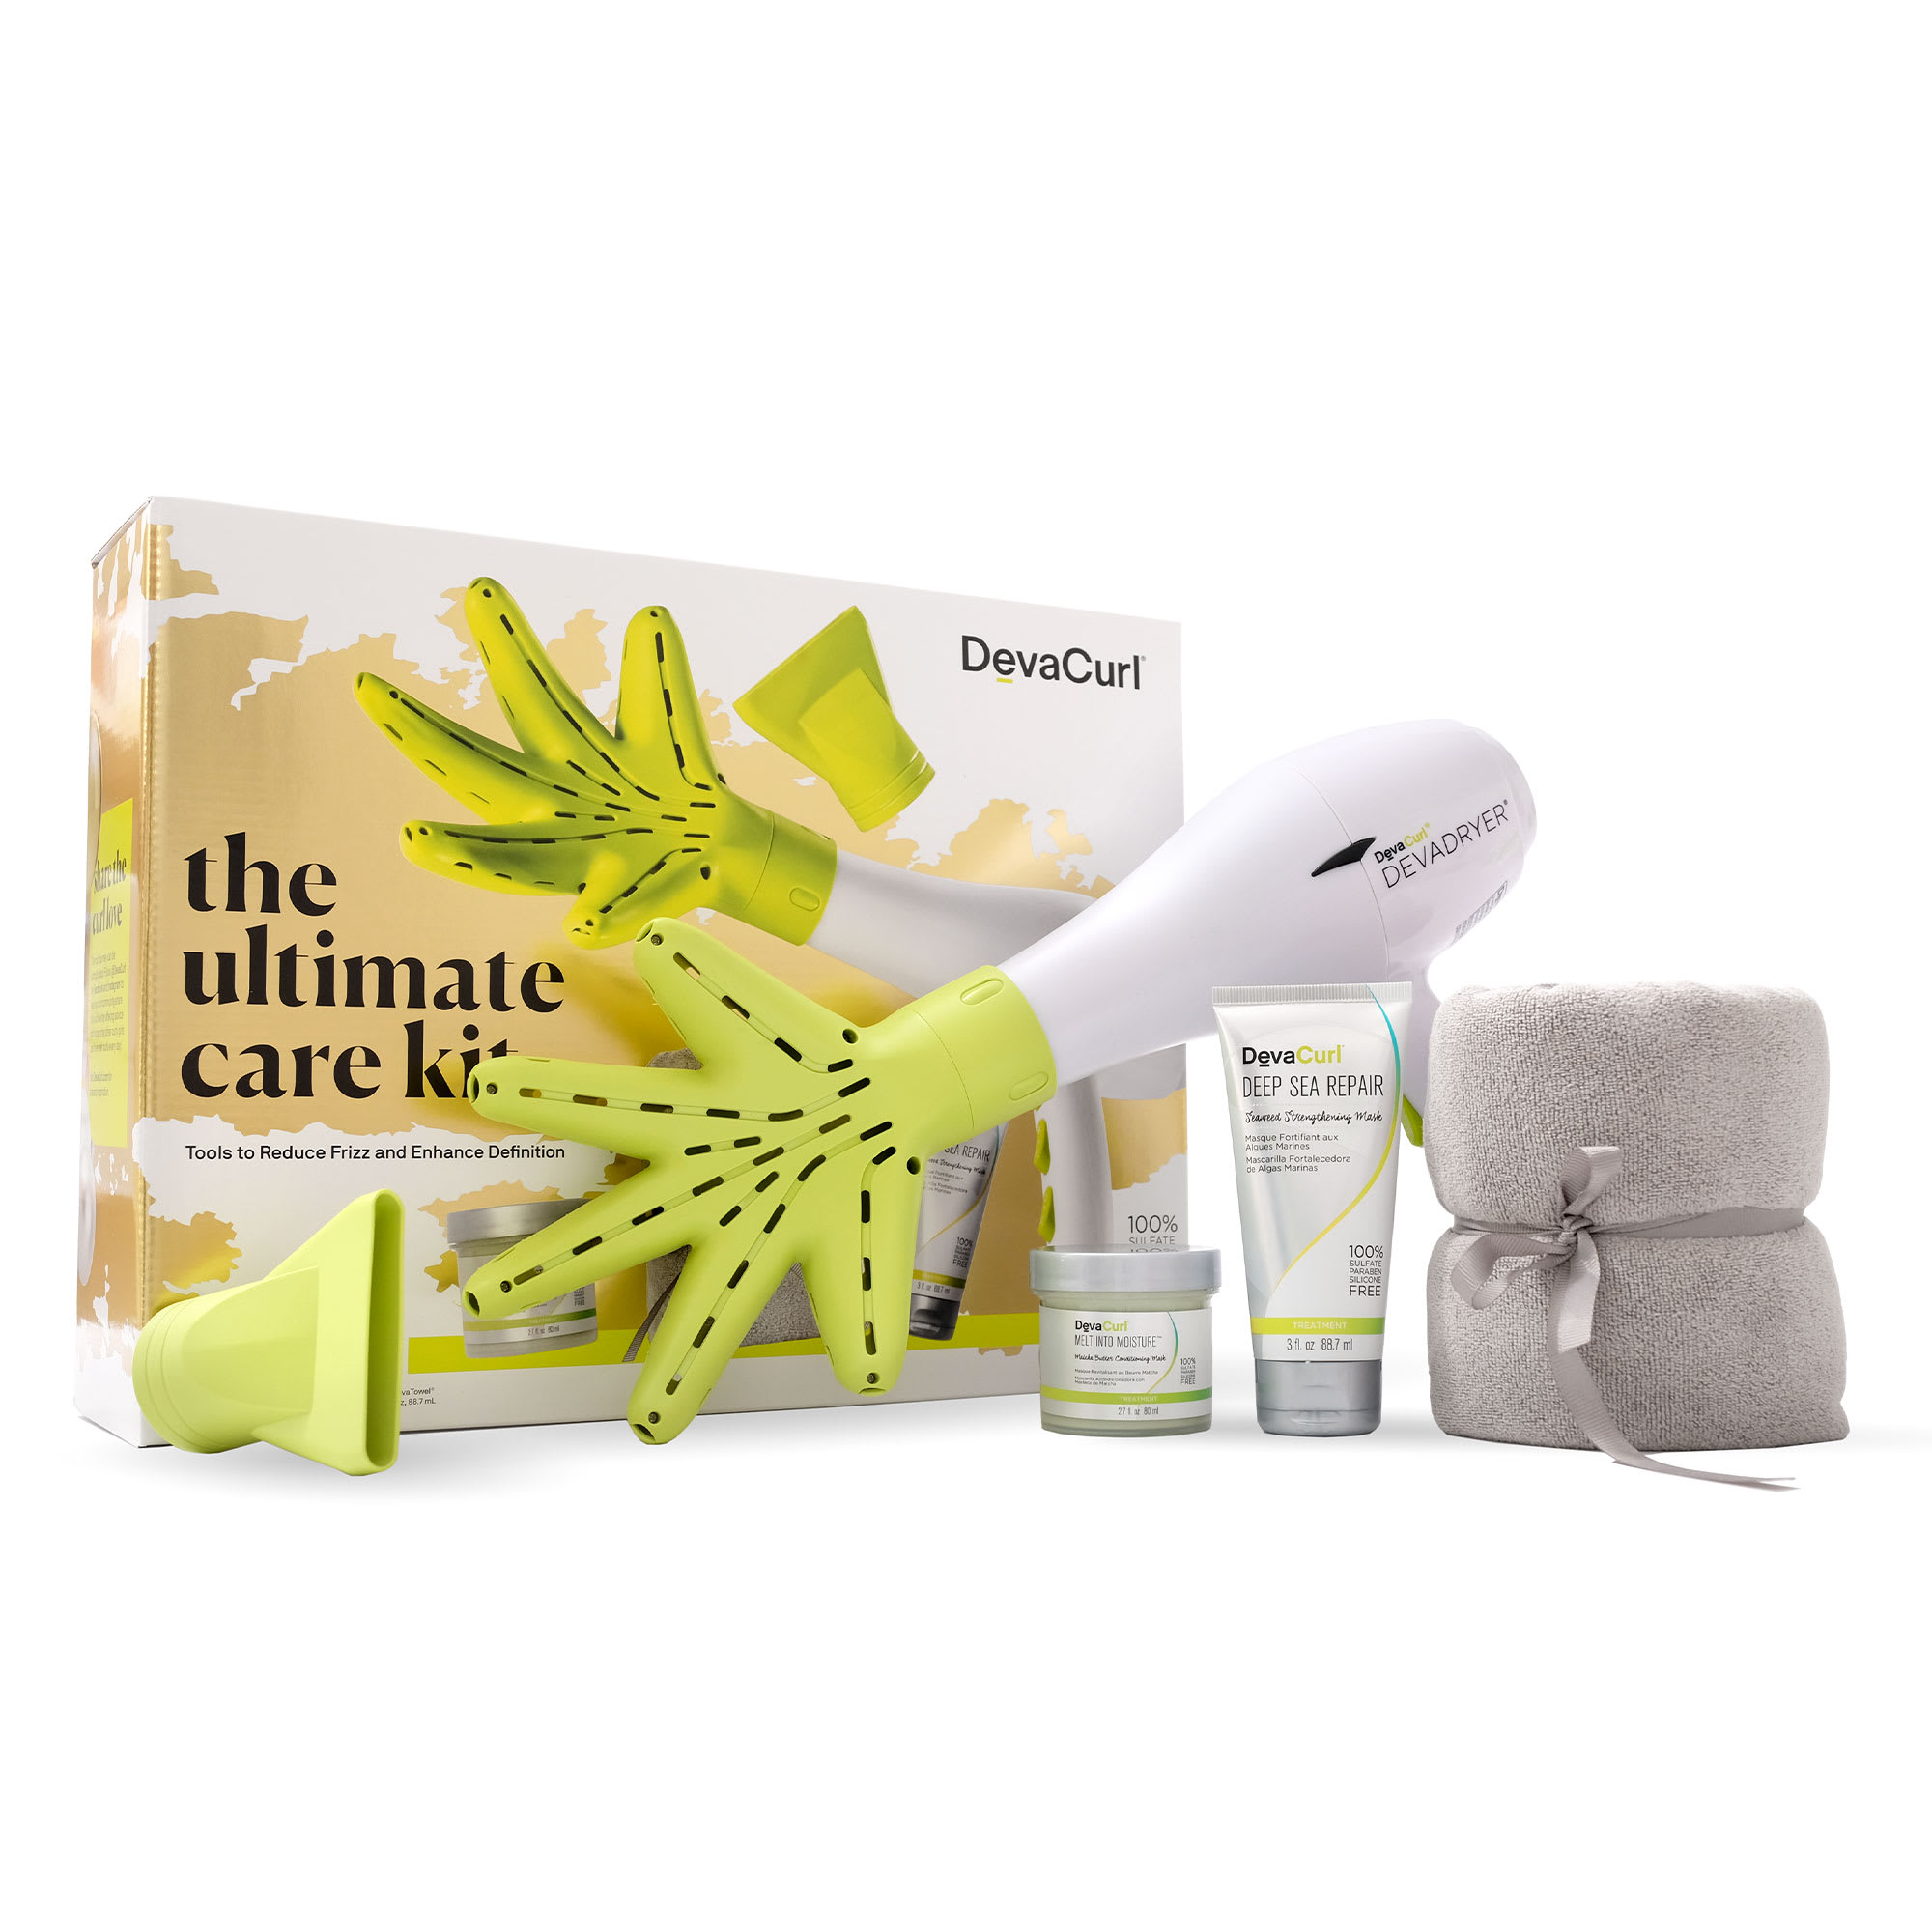 devacurl the ultimate care kit package